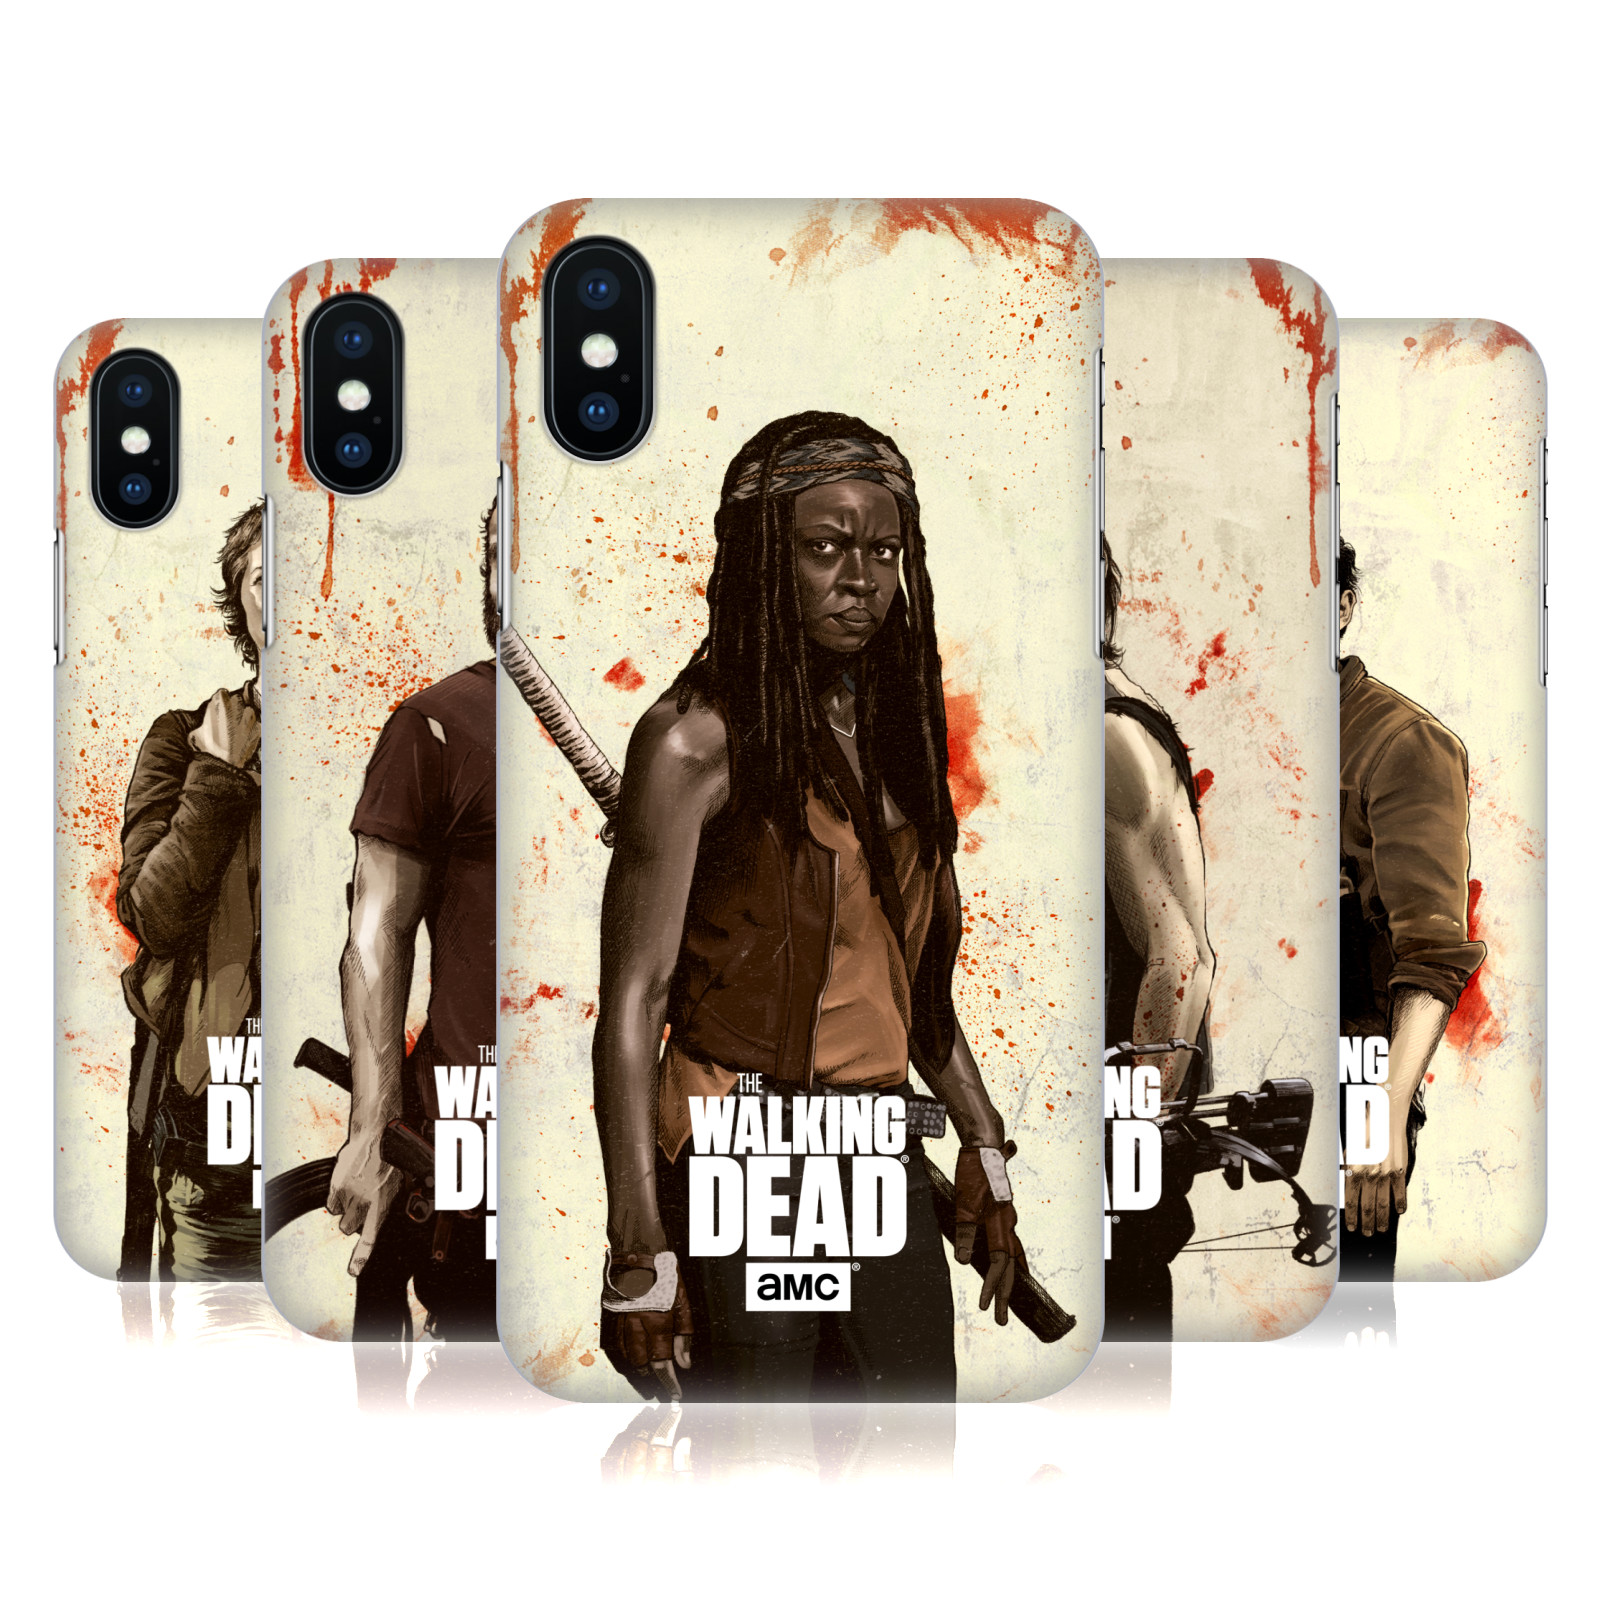 Official AMC The Walking Dead Distressed Illustrations